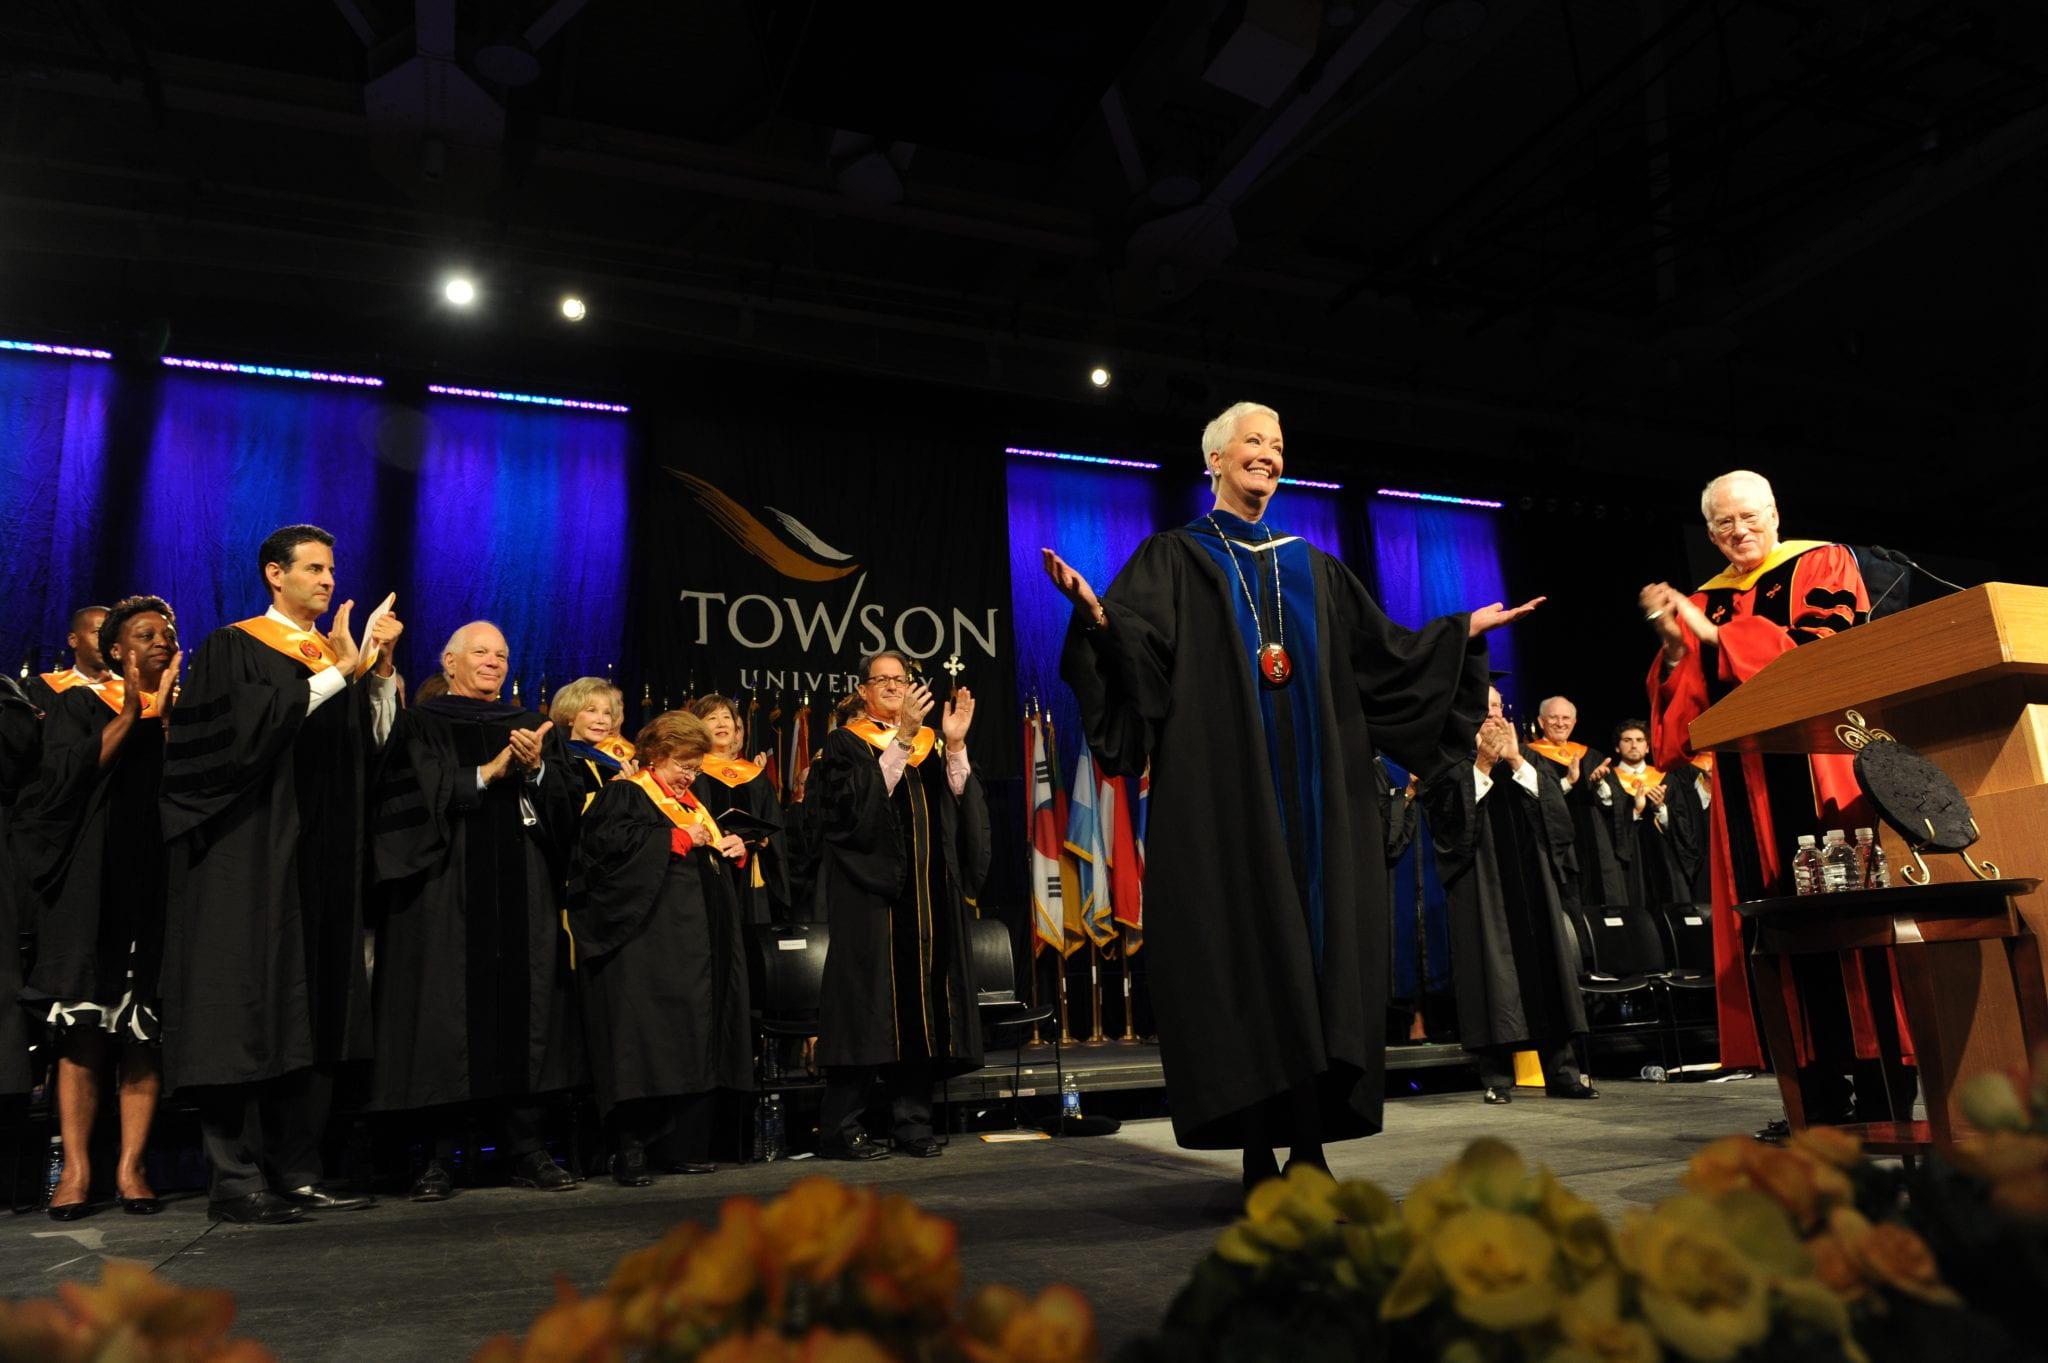 Loeschke, after receiving the Towson University medallion at her inauguration.